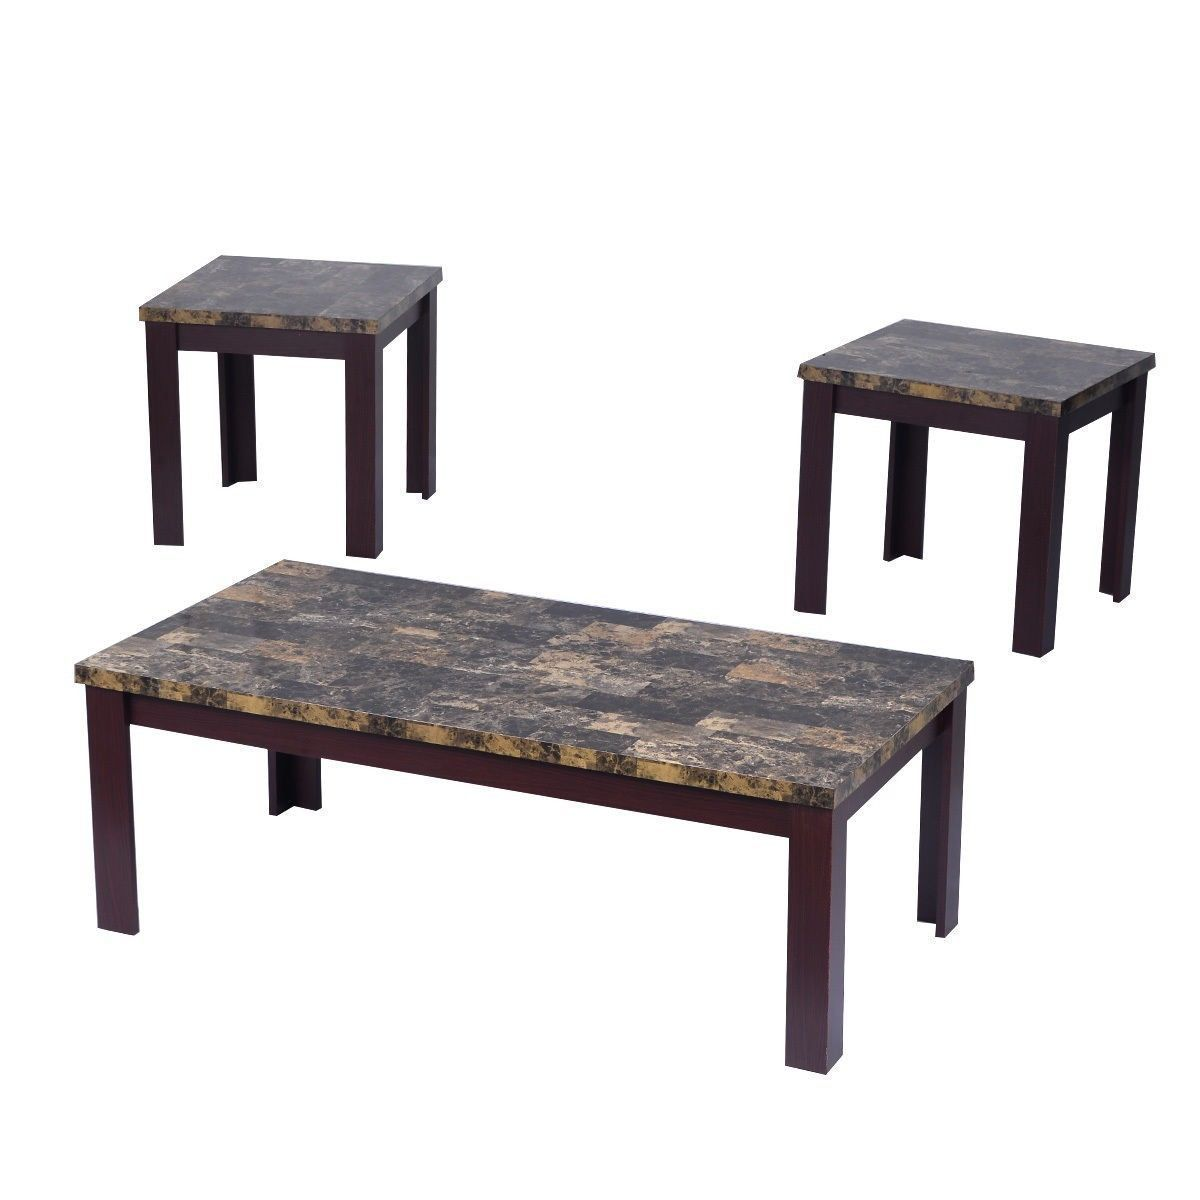 Faux Marble Coffee Table Set Living Room Sofa Accent End Corner 3 Piece Set New Tables